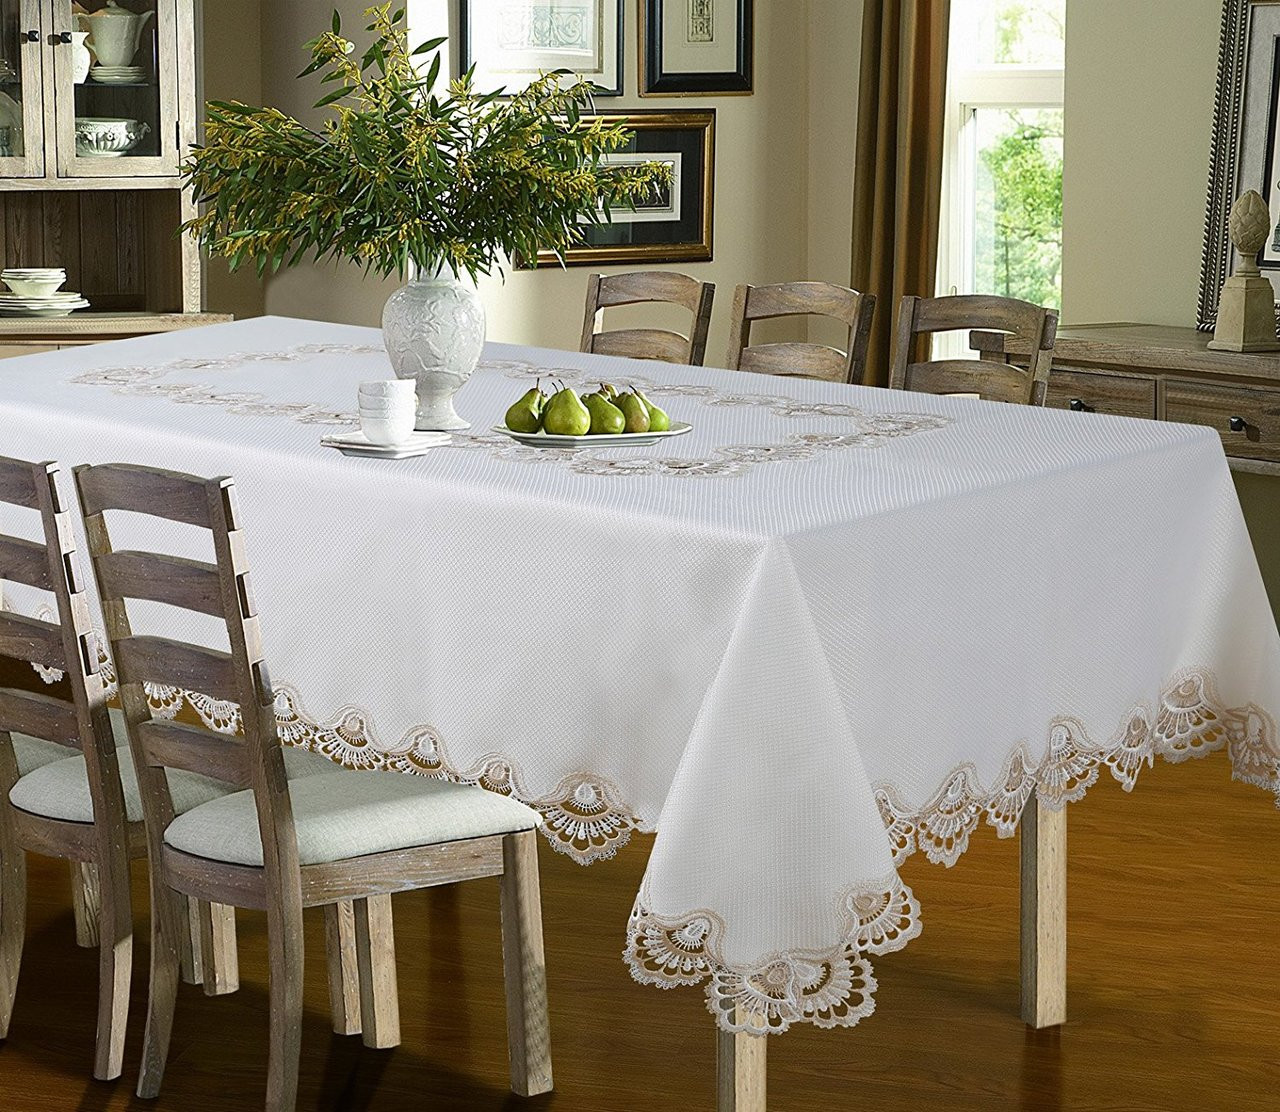 Luxury Crest Embroidered Table cloth, Top Dinner Kitchen Table Cover